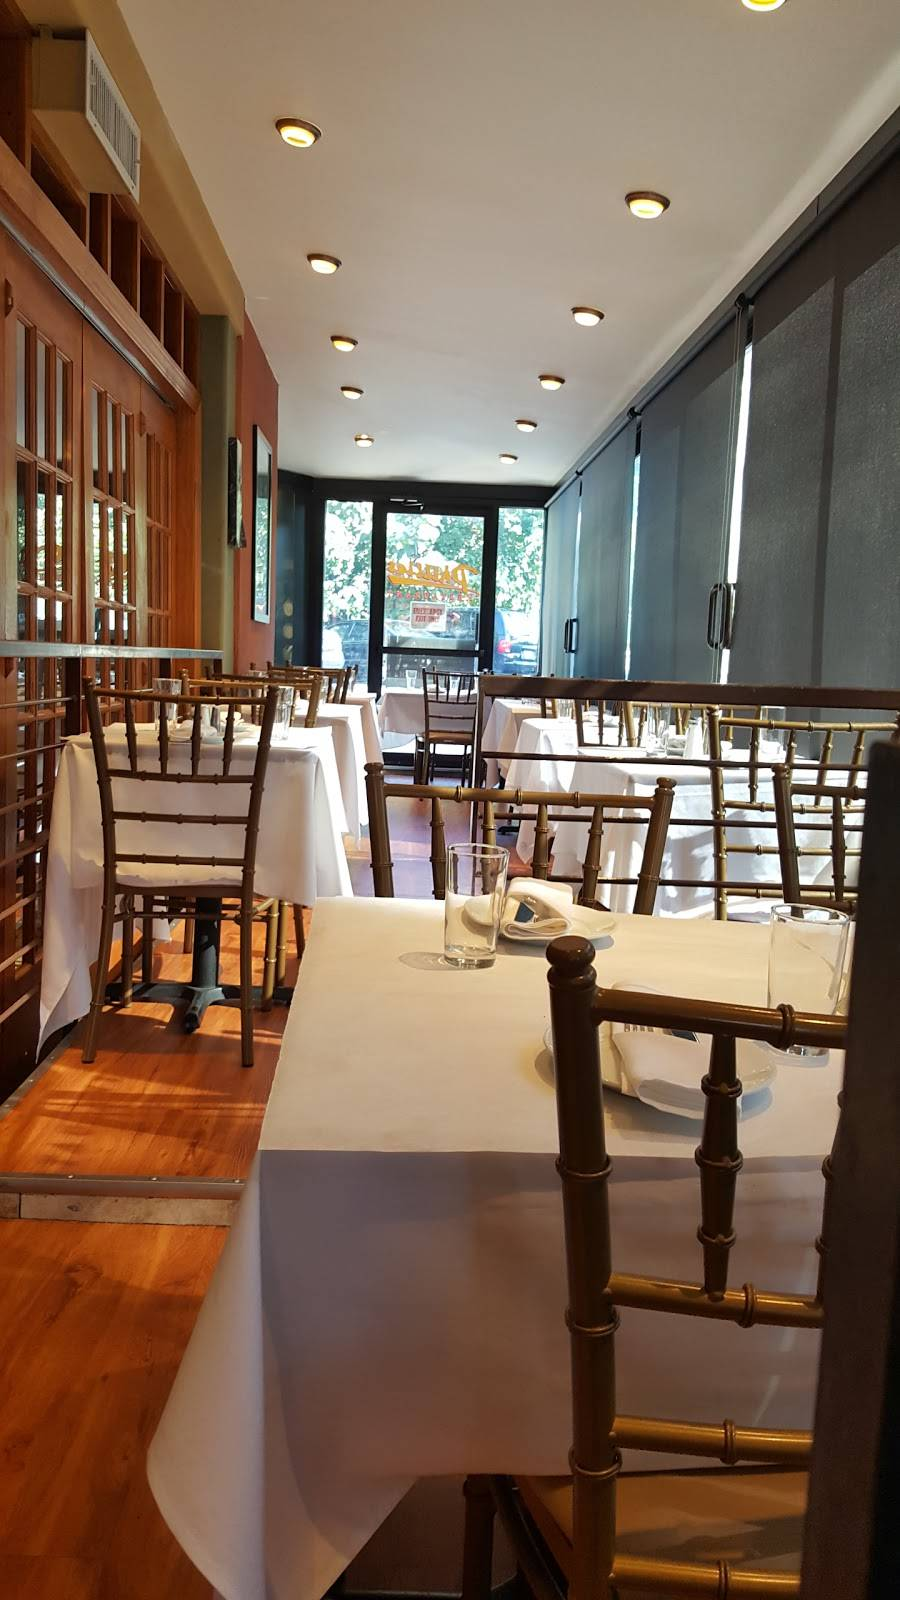 Phillies | restaurant | 74-02 Eliot Ave, Middle Village, NY 11379, USA | 7183971340 OR +1 718-397-1340